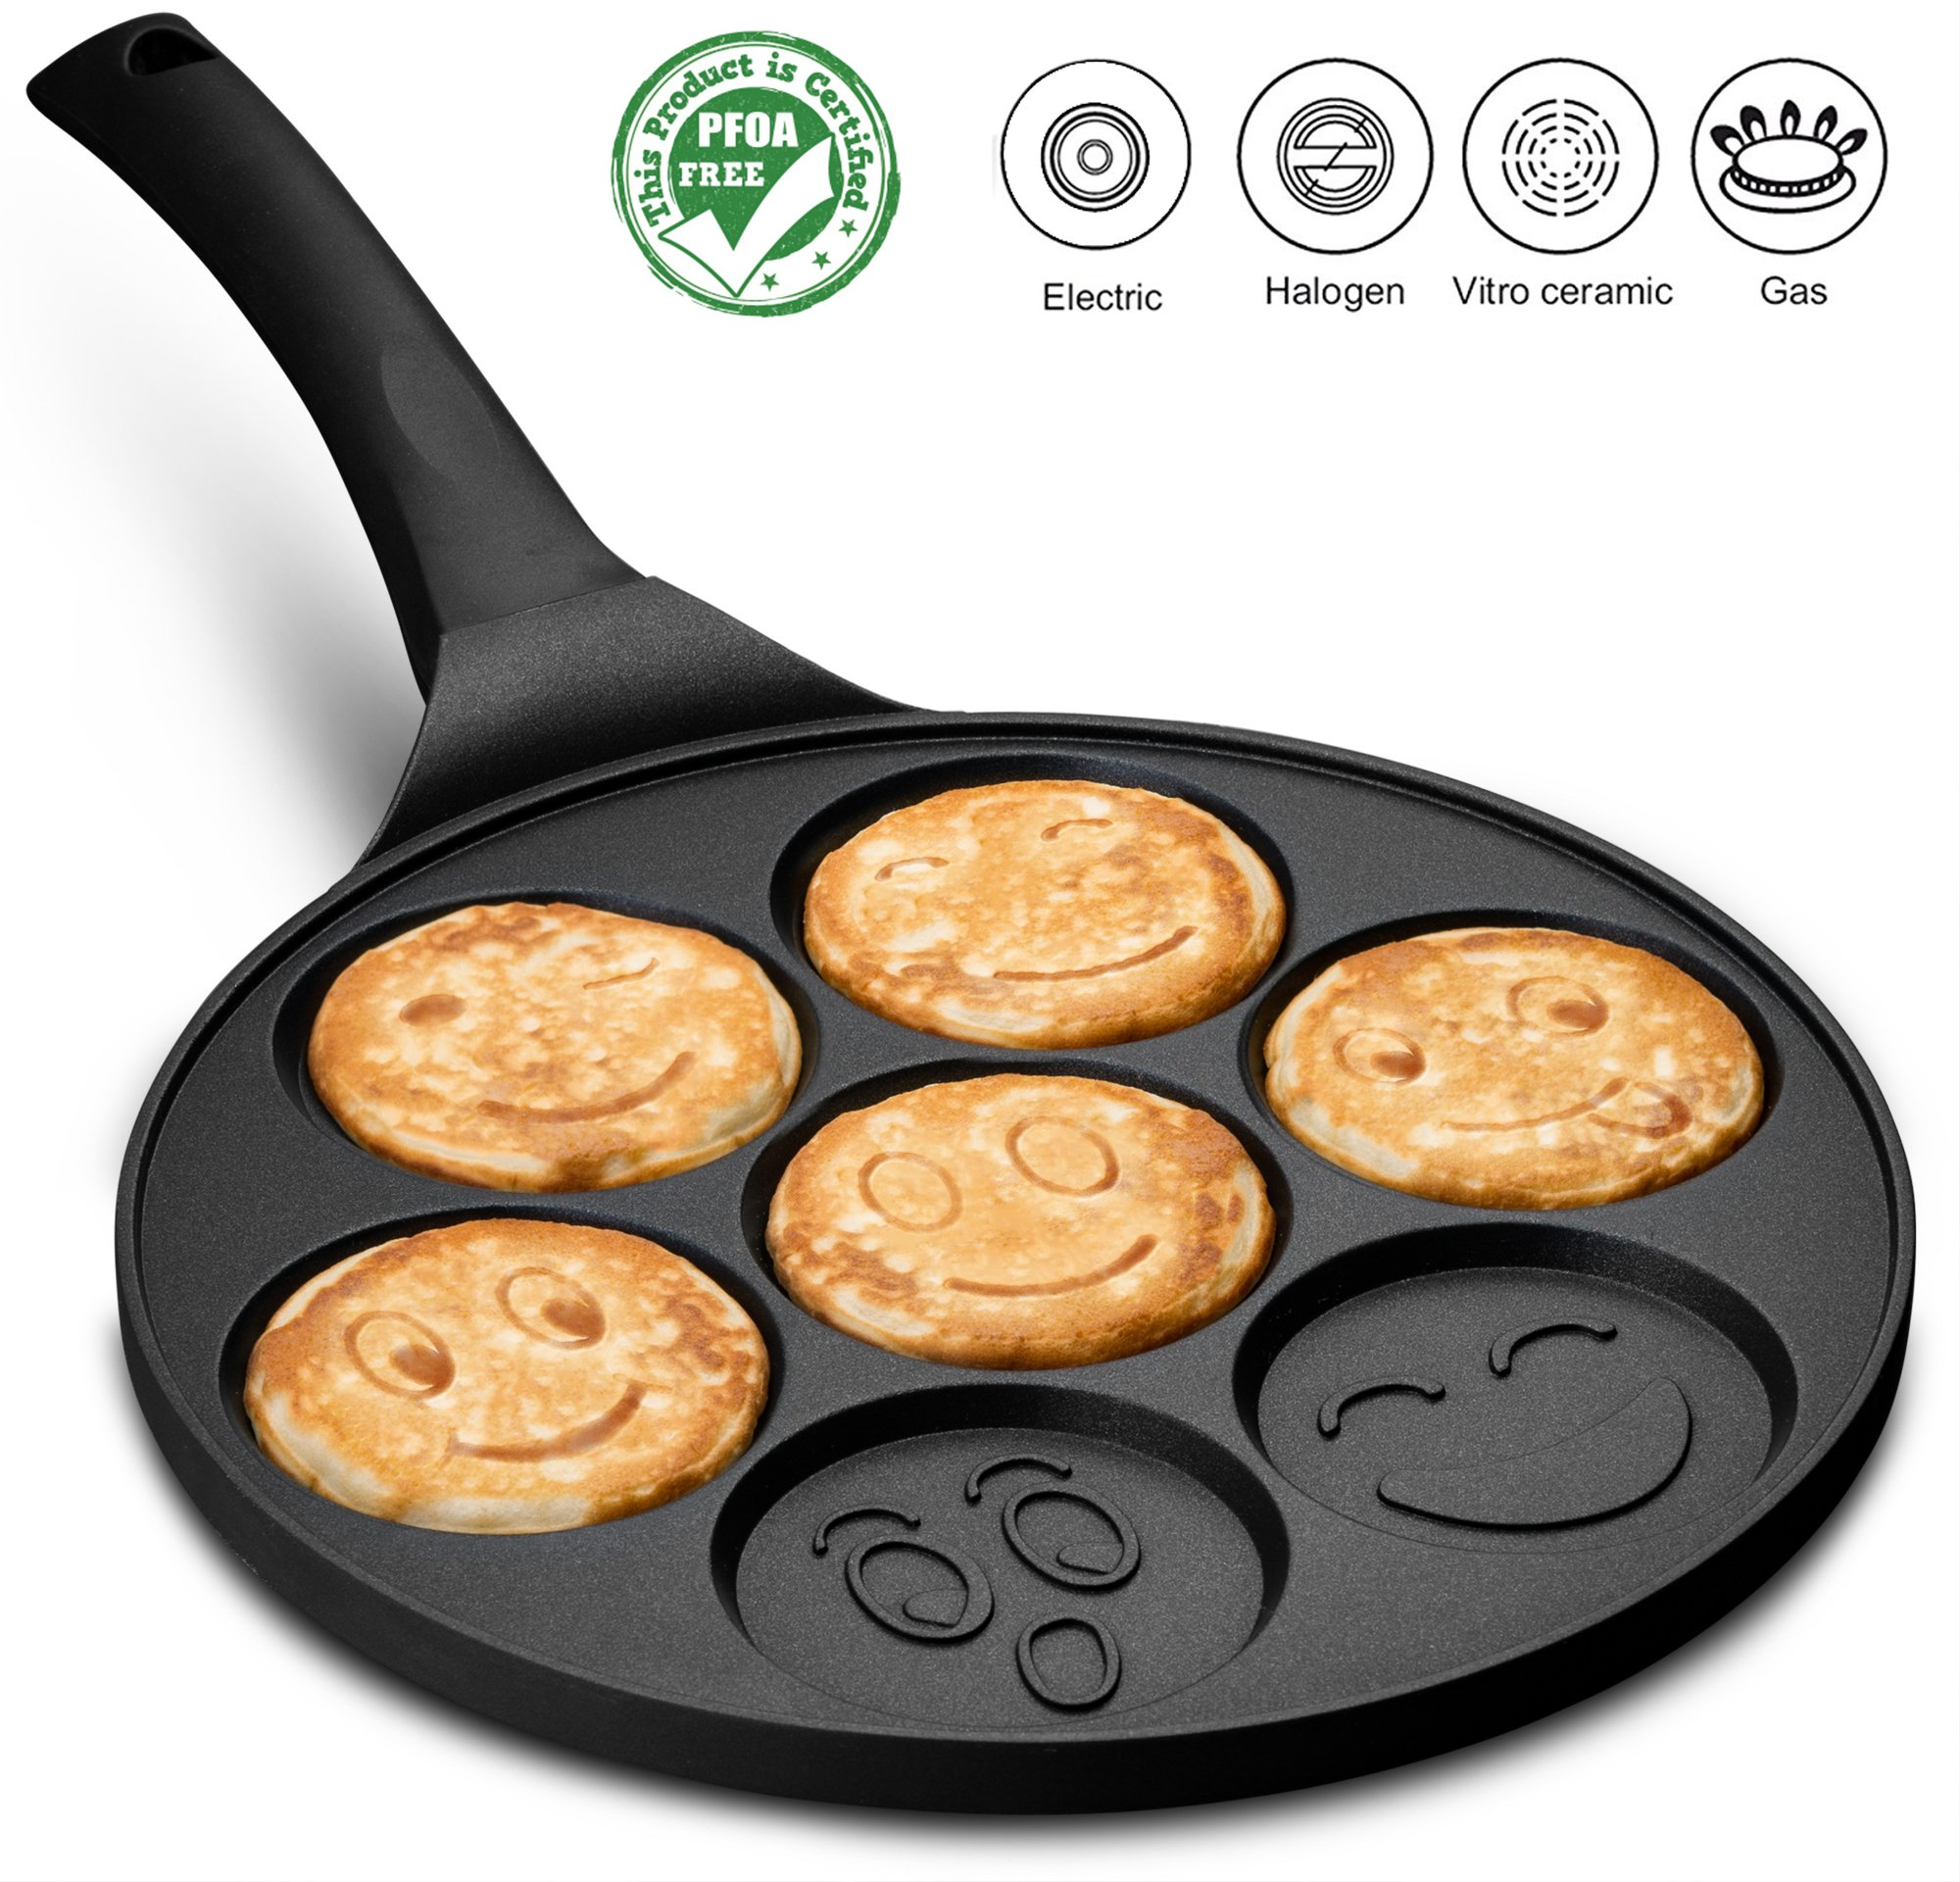 Gourmia GPA9540 Smiley Face Pancake Pan – Fun 7 Emoji Mini Pancake and Flapjack Maker – Die Cast Aluminum, Double Layer Nonstick Coating – Cool-to-Touch Handle